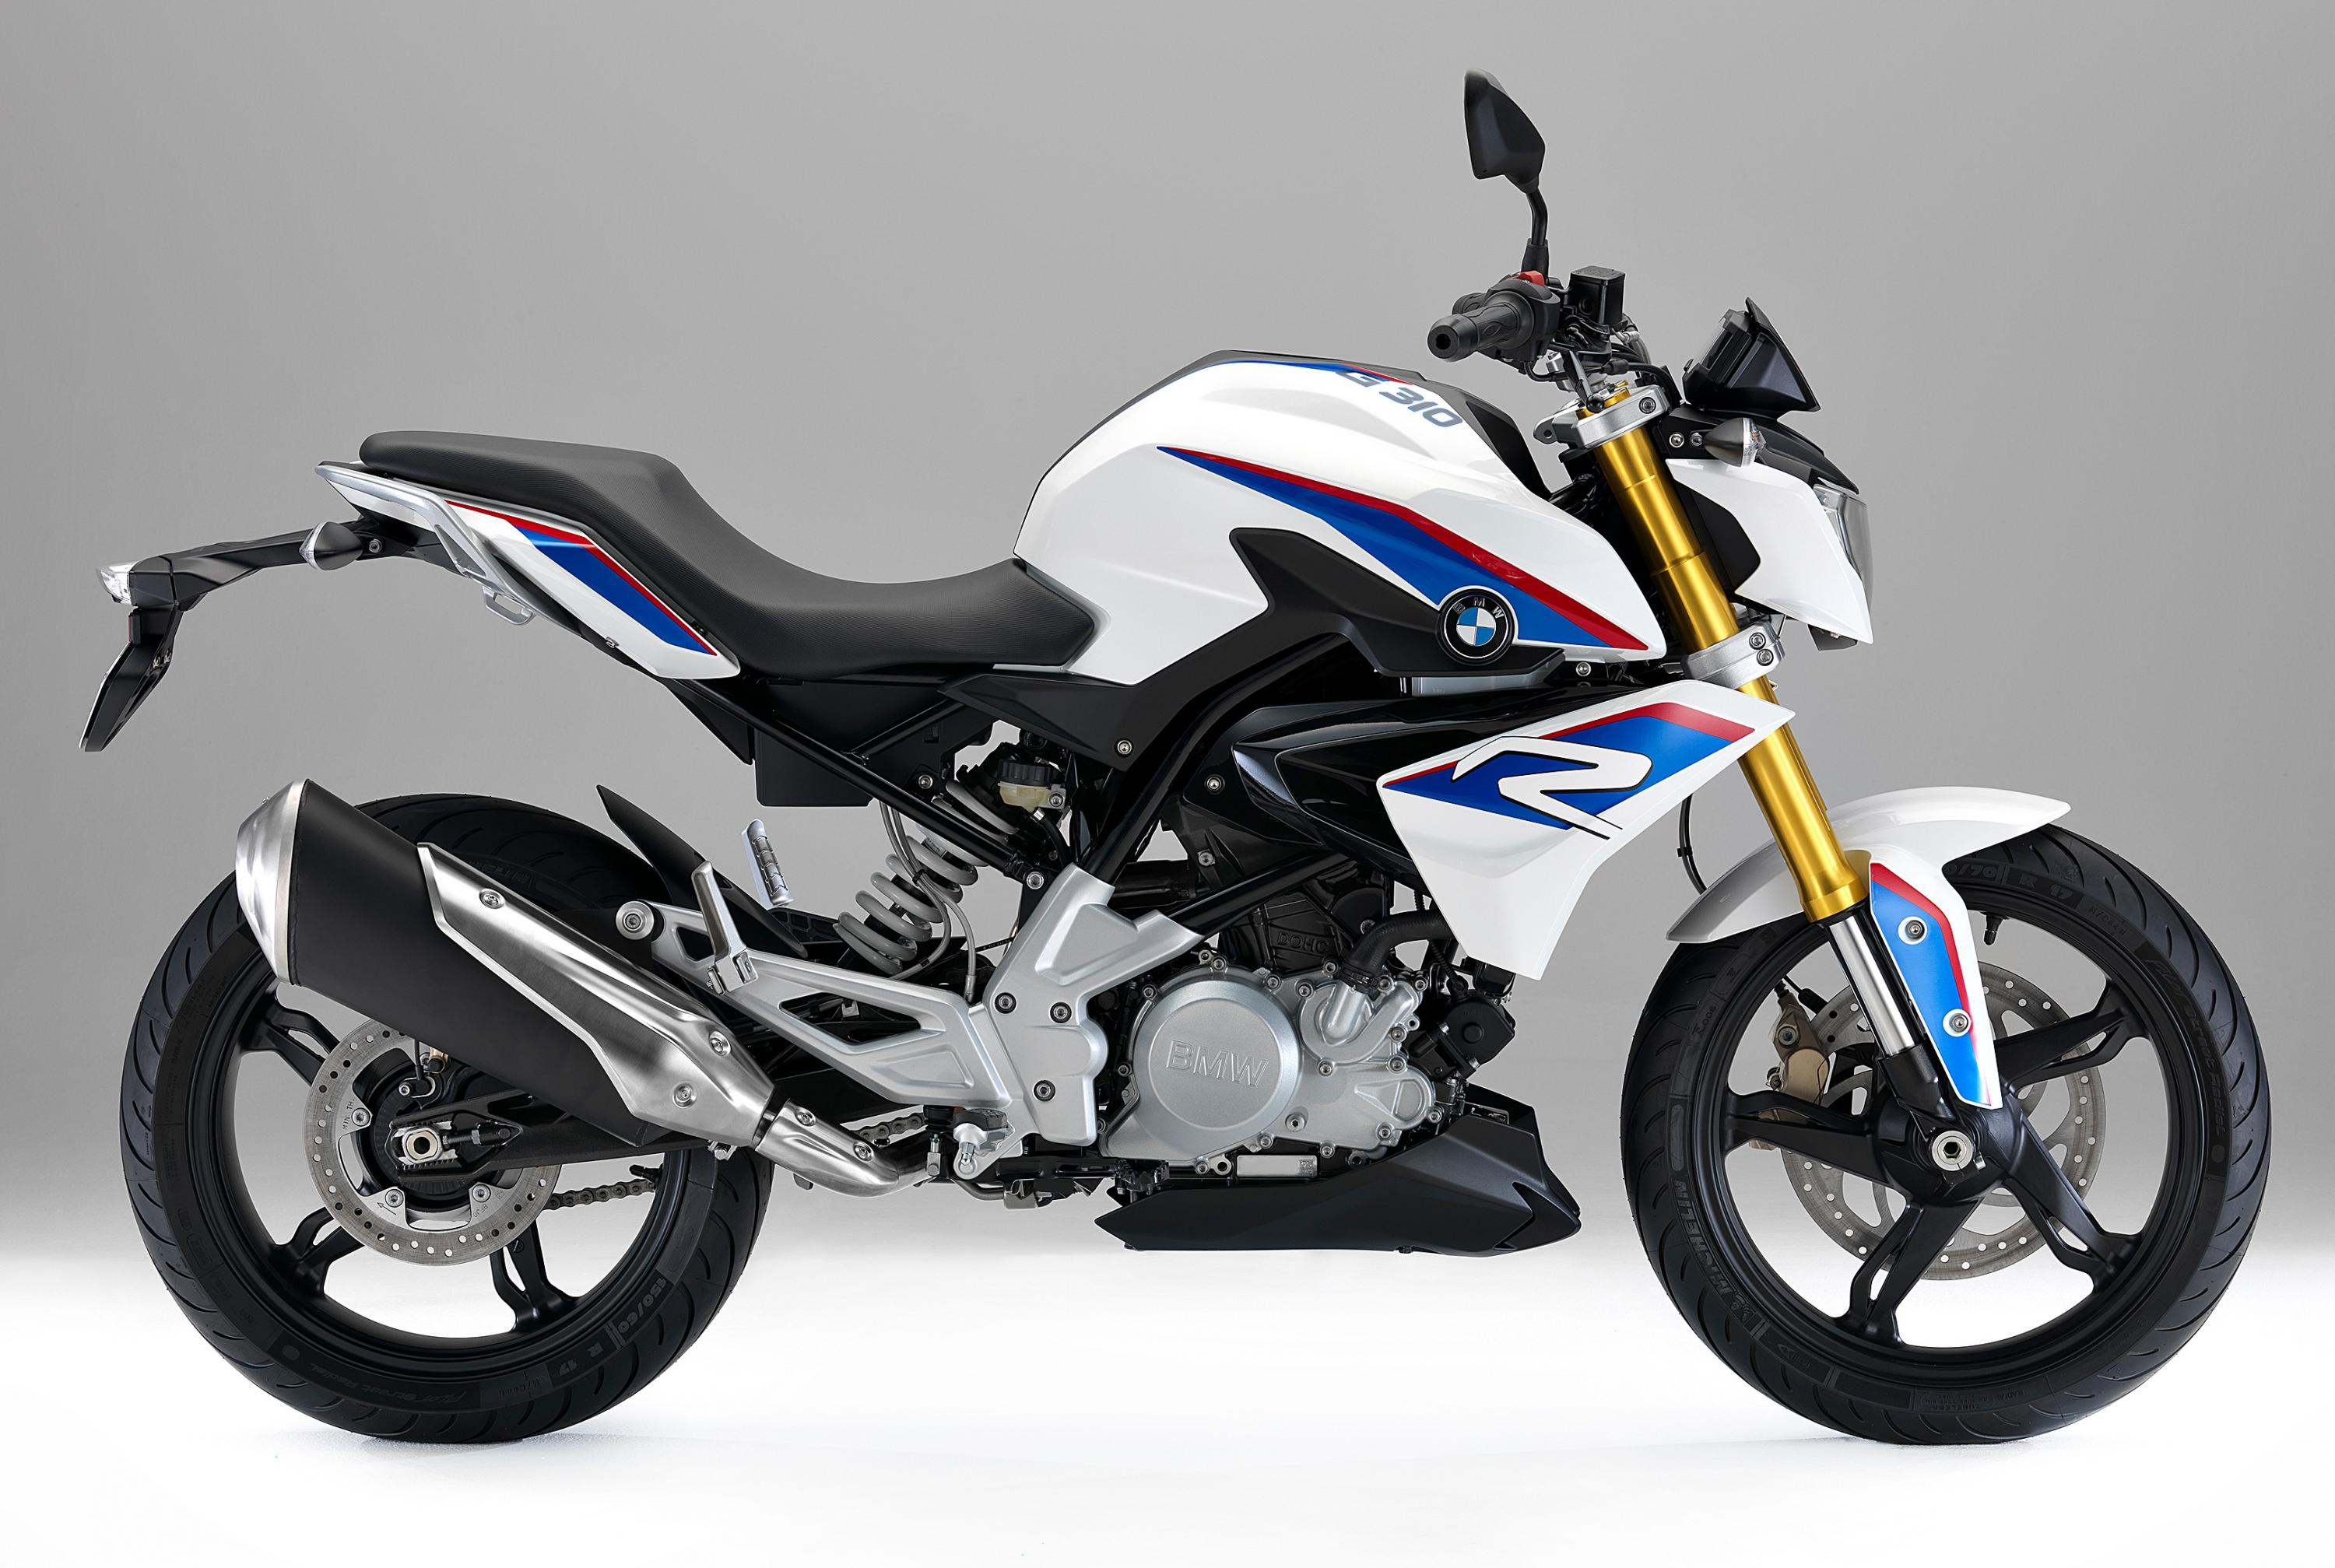 For Sale Bmw G310r The Bike Market